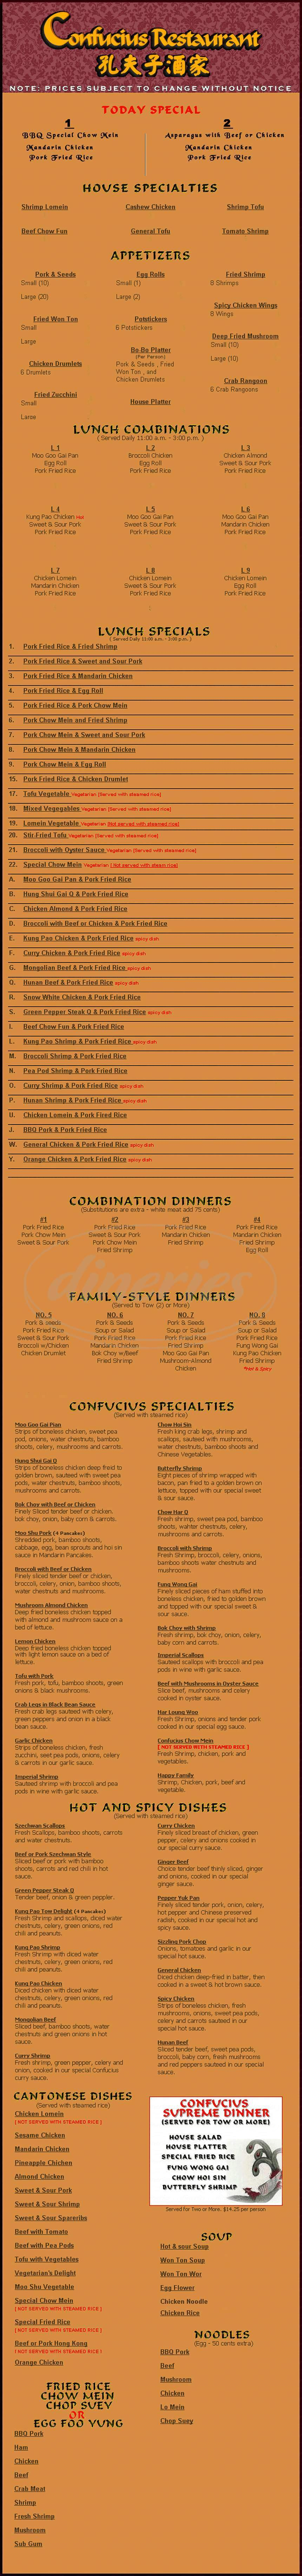 menu for Confucius Restaurant